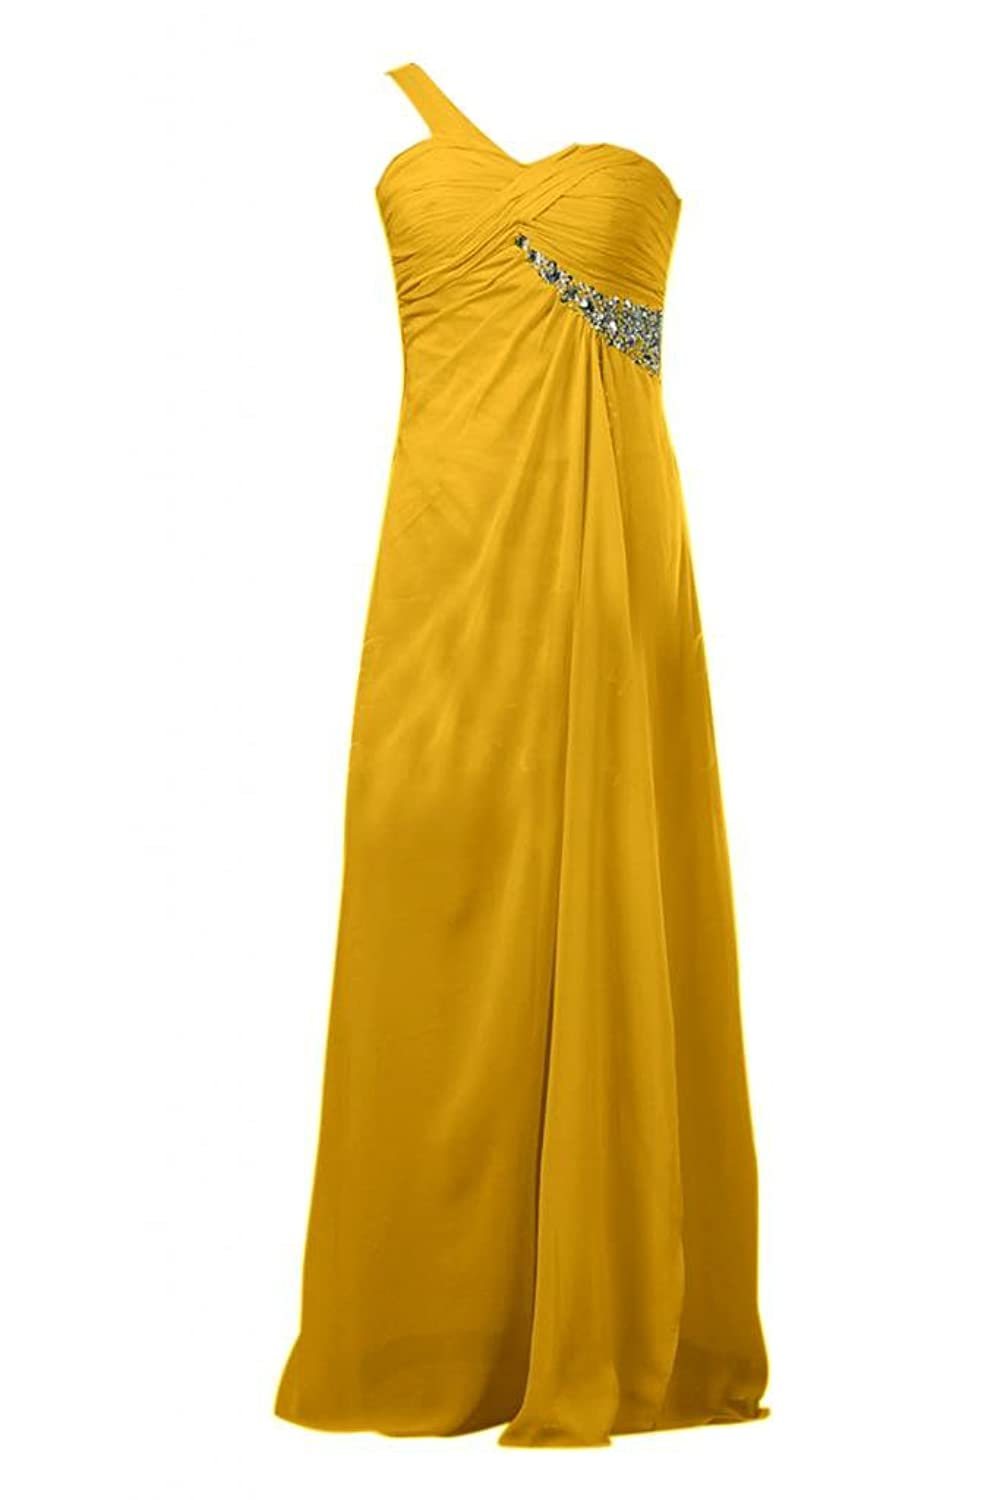 Sunvary Halter Sleeveless Front Slit Trailing Dresses for Prom Eveing Gowns